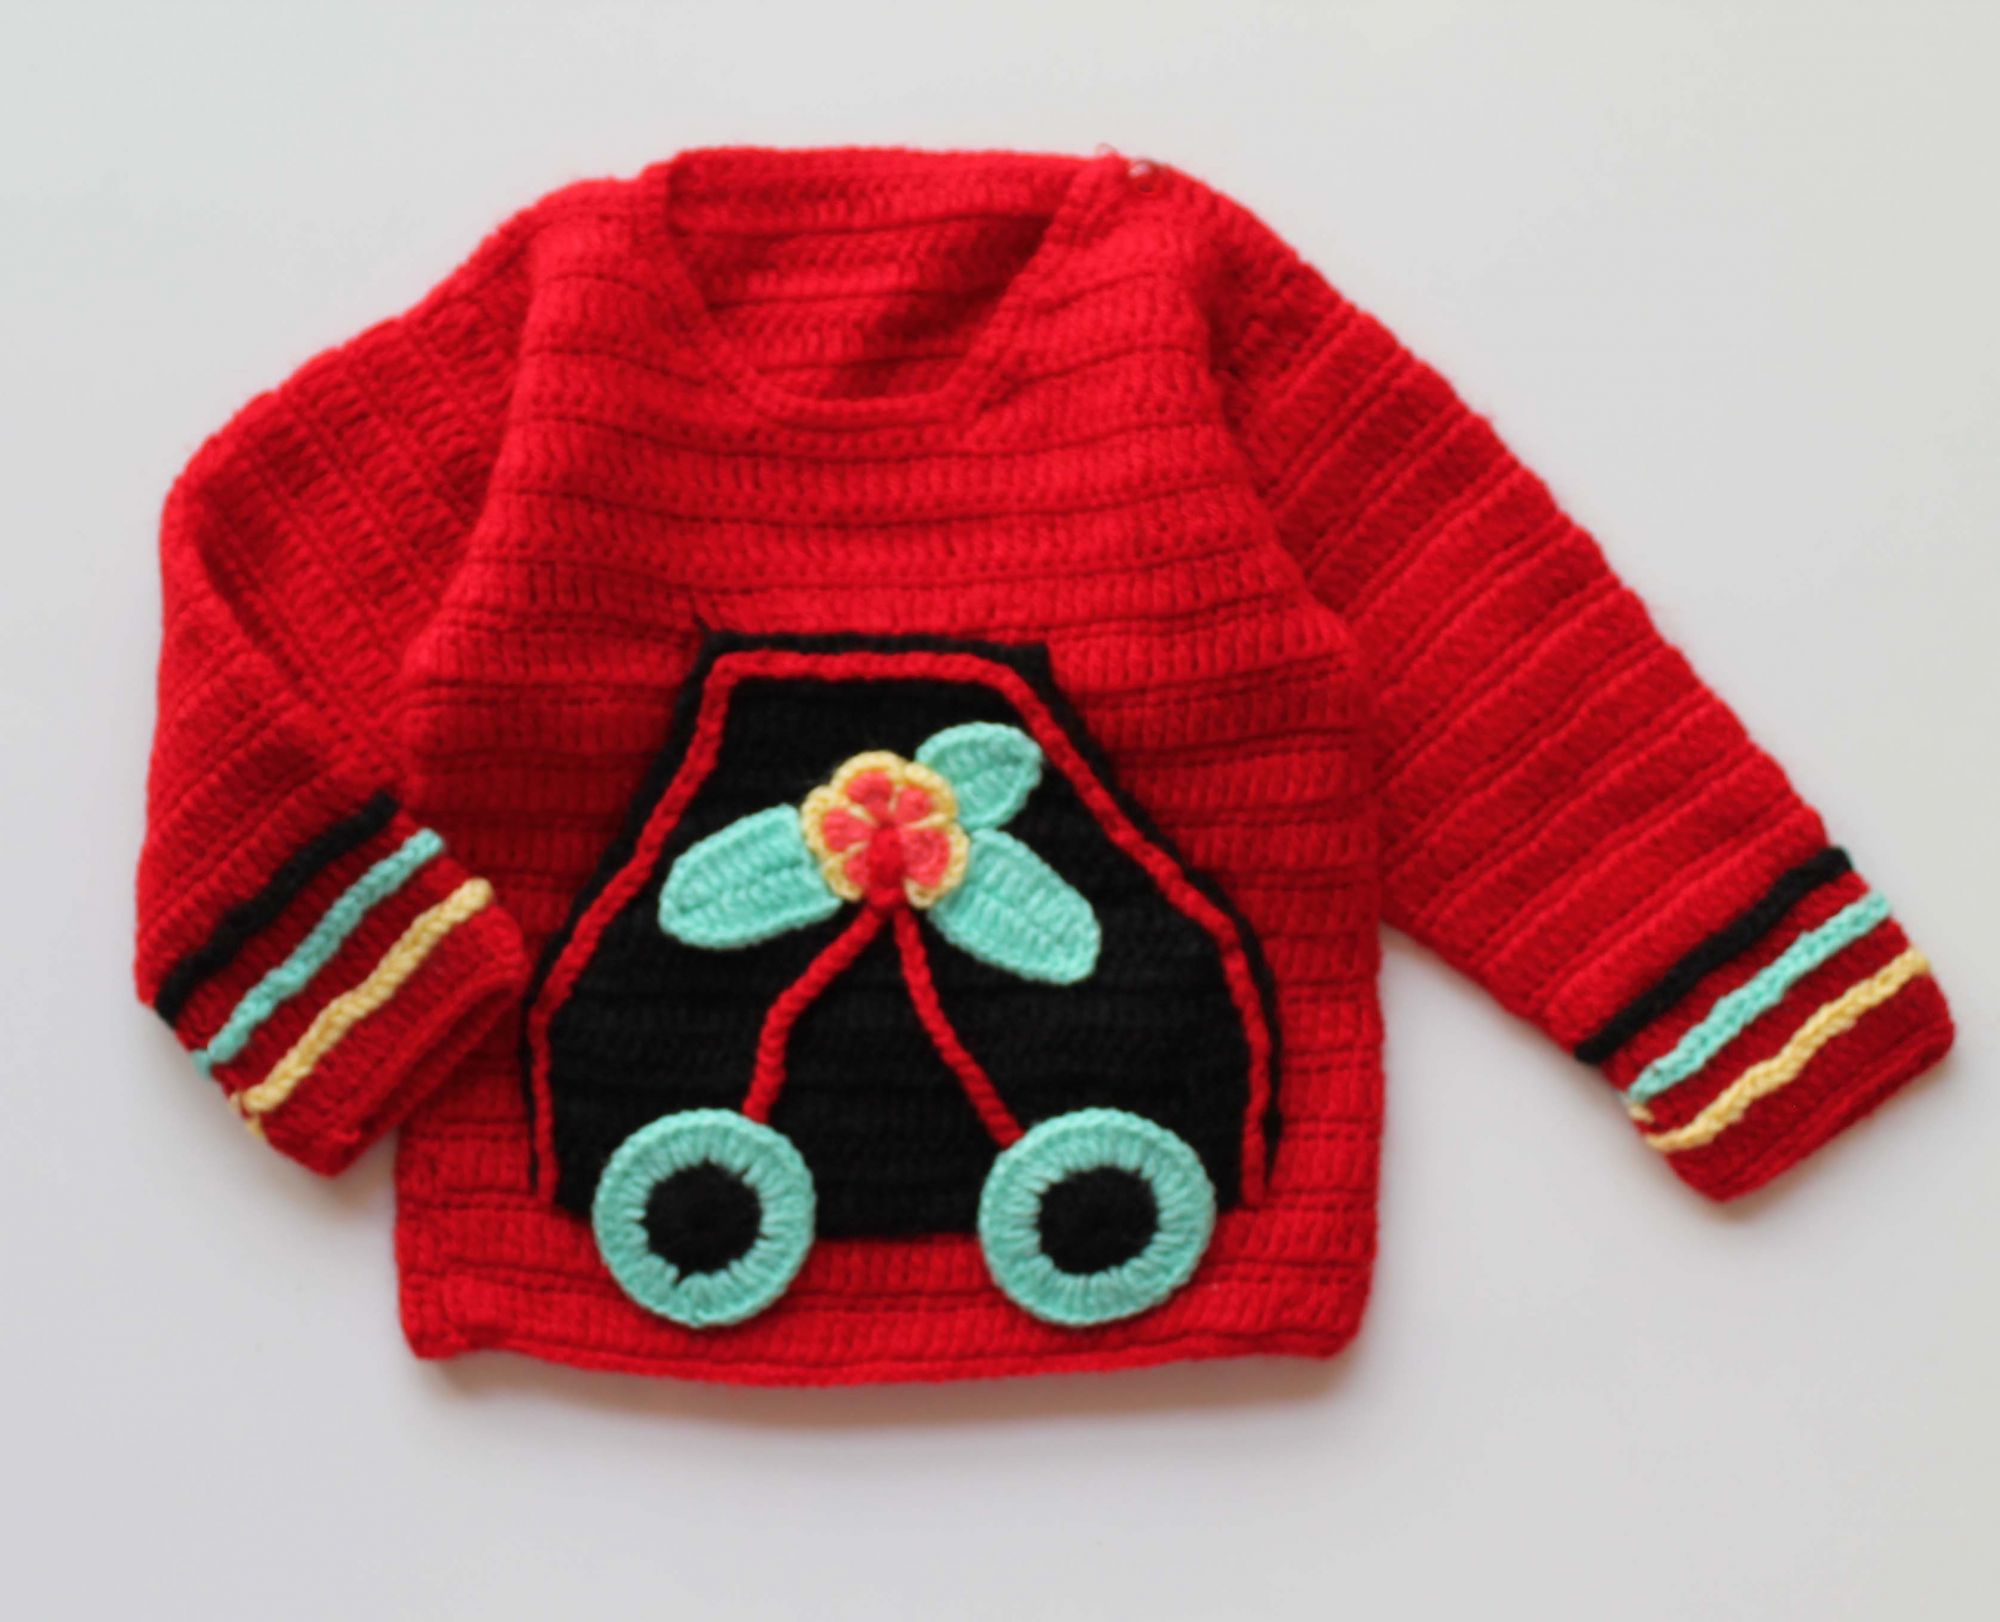 Woonie Handmade Red Cute Sweater for Kids